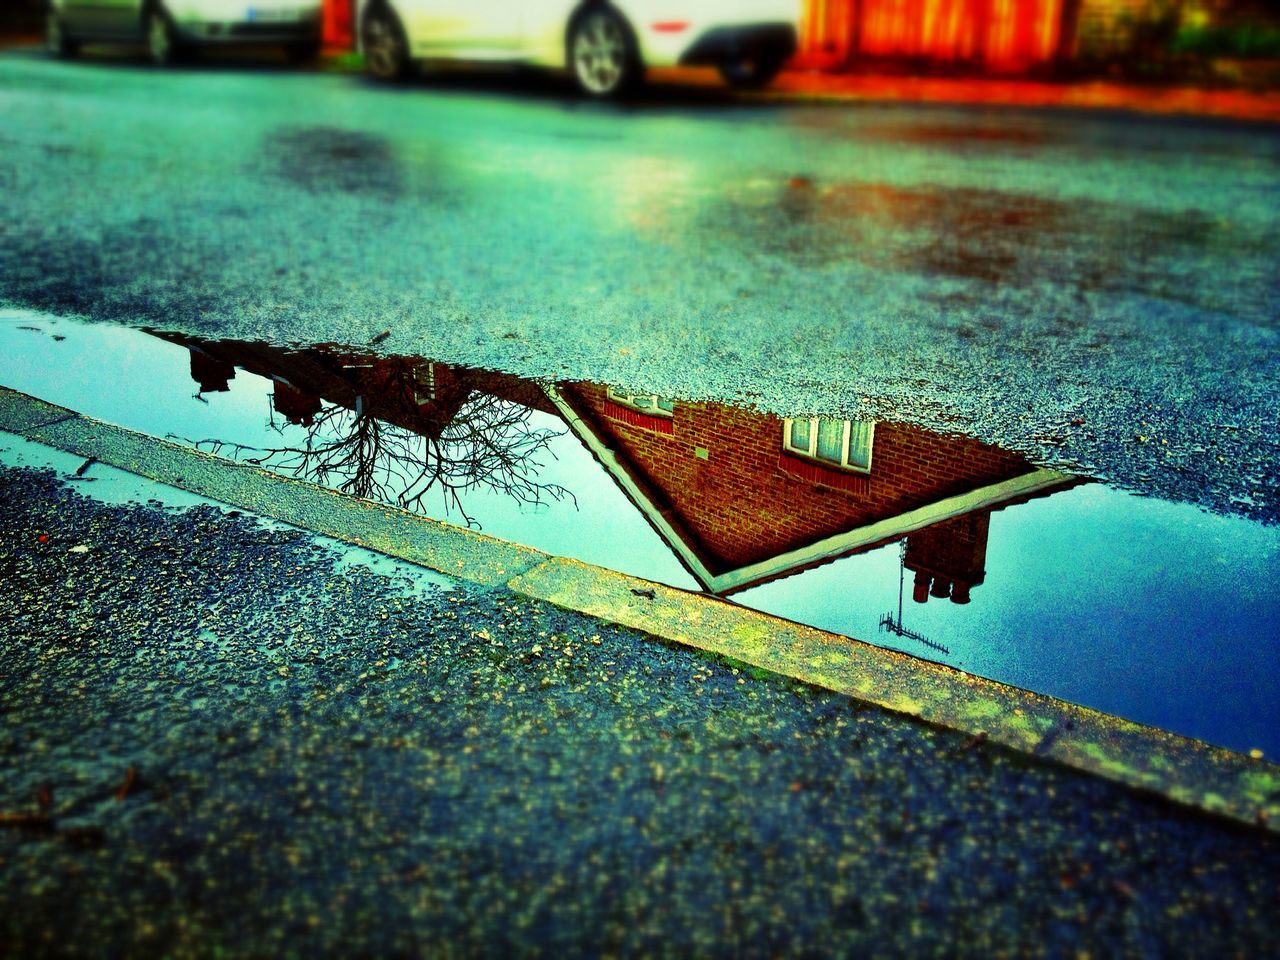 Reflection of built structure and tree in puddle